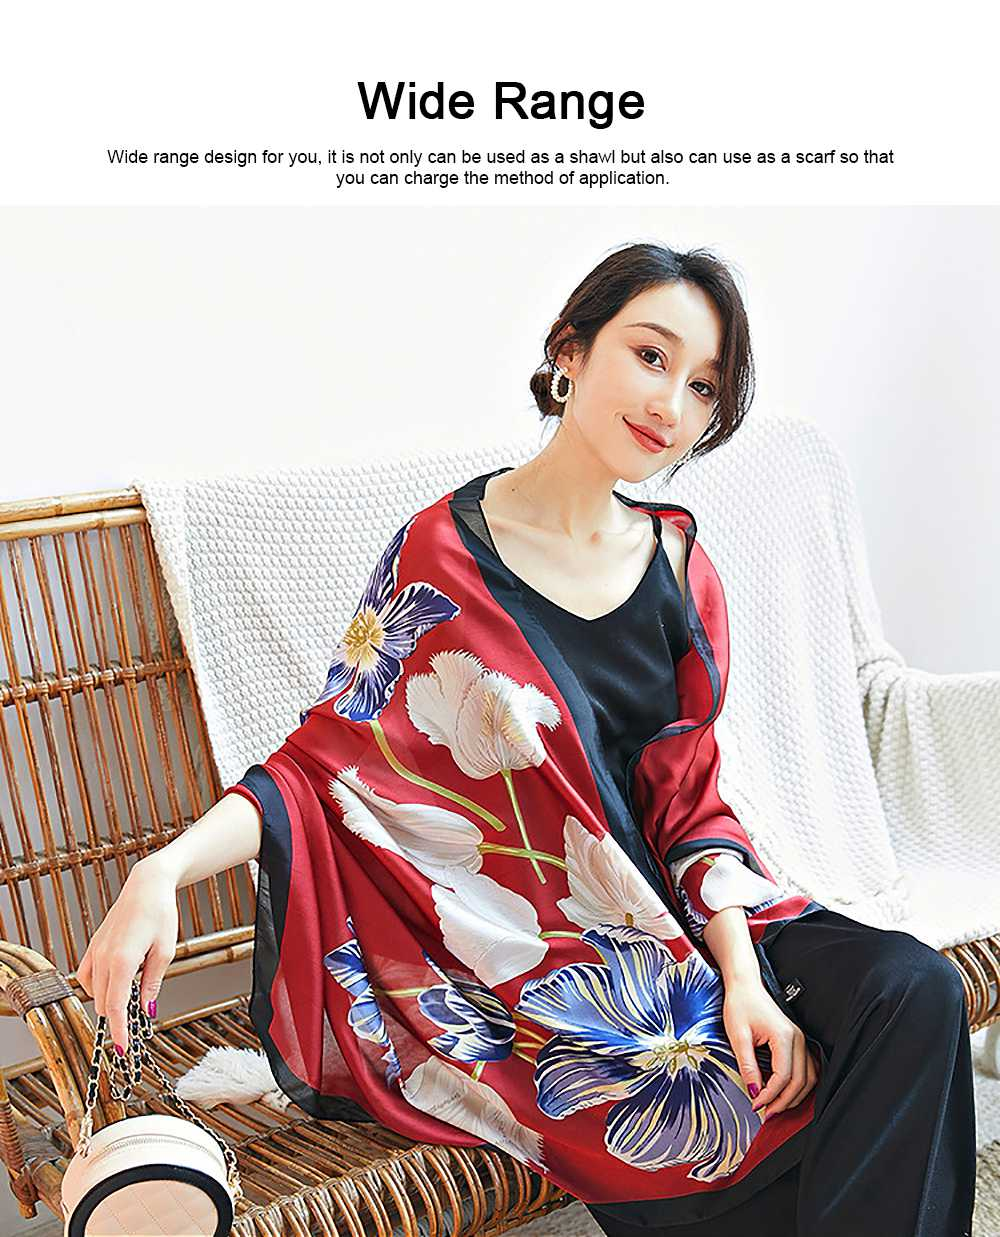 Imitation Silk Scarf for Women Chinese Style Square Shape Suitable for Many Occasions Shawl, Wide Range Scarves 2